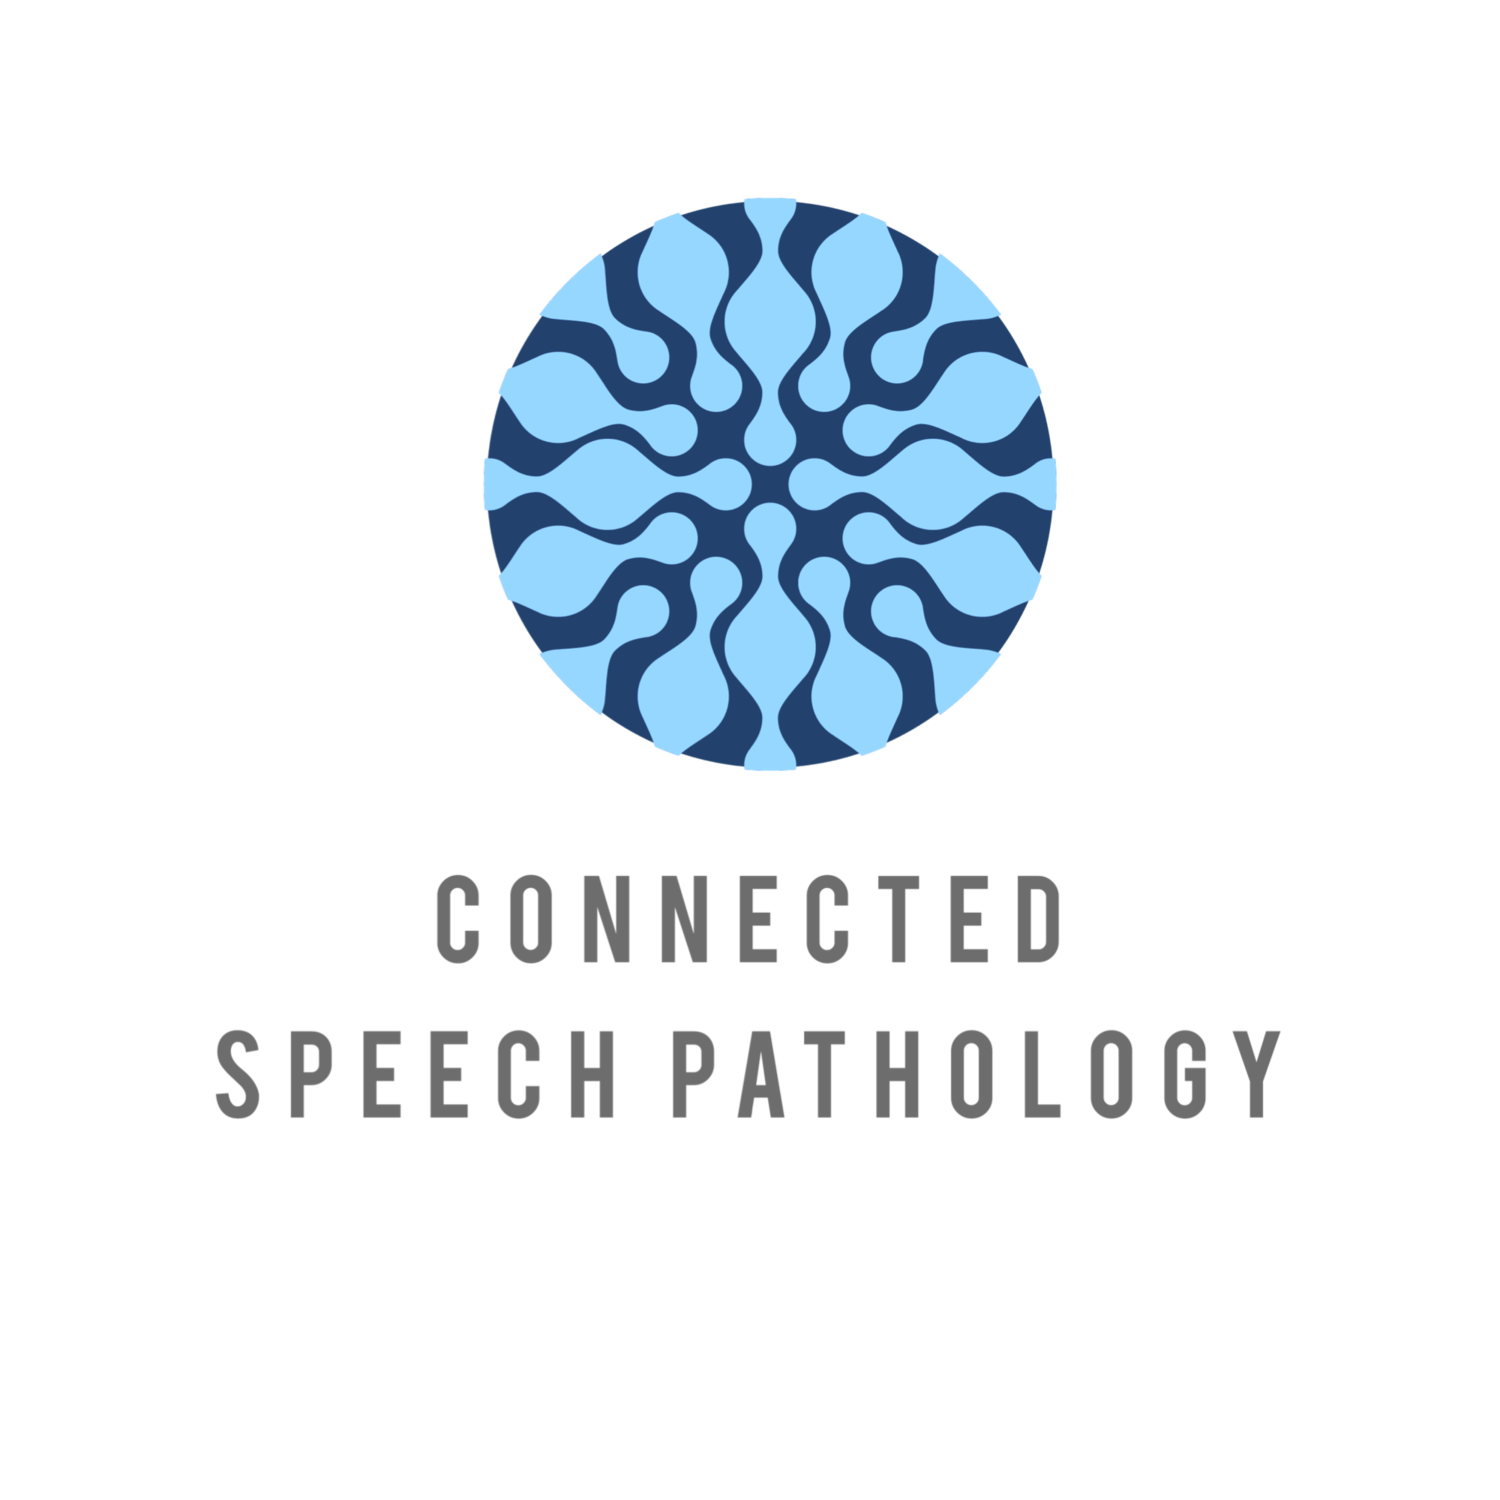 Connected Speech Pathology